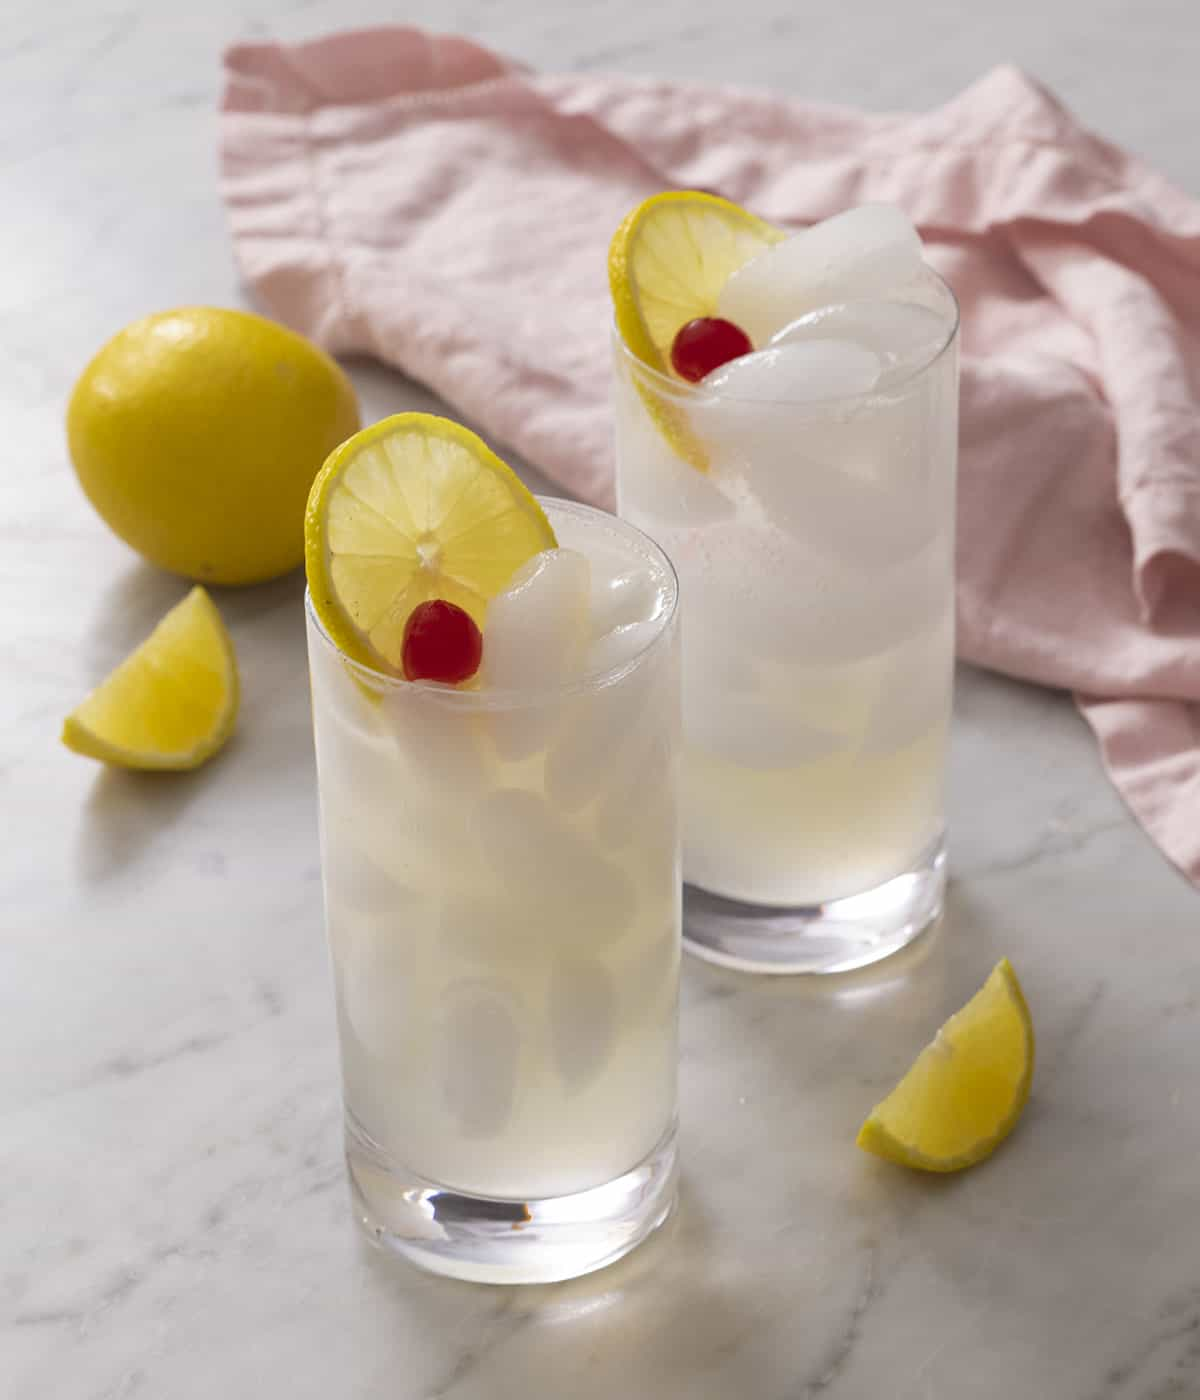 Two Tom Collins topped with cherries and lemon slices on a marble surface